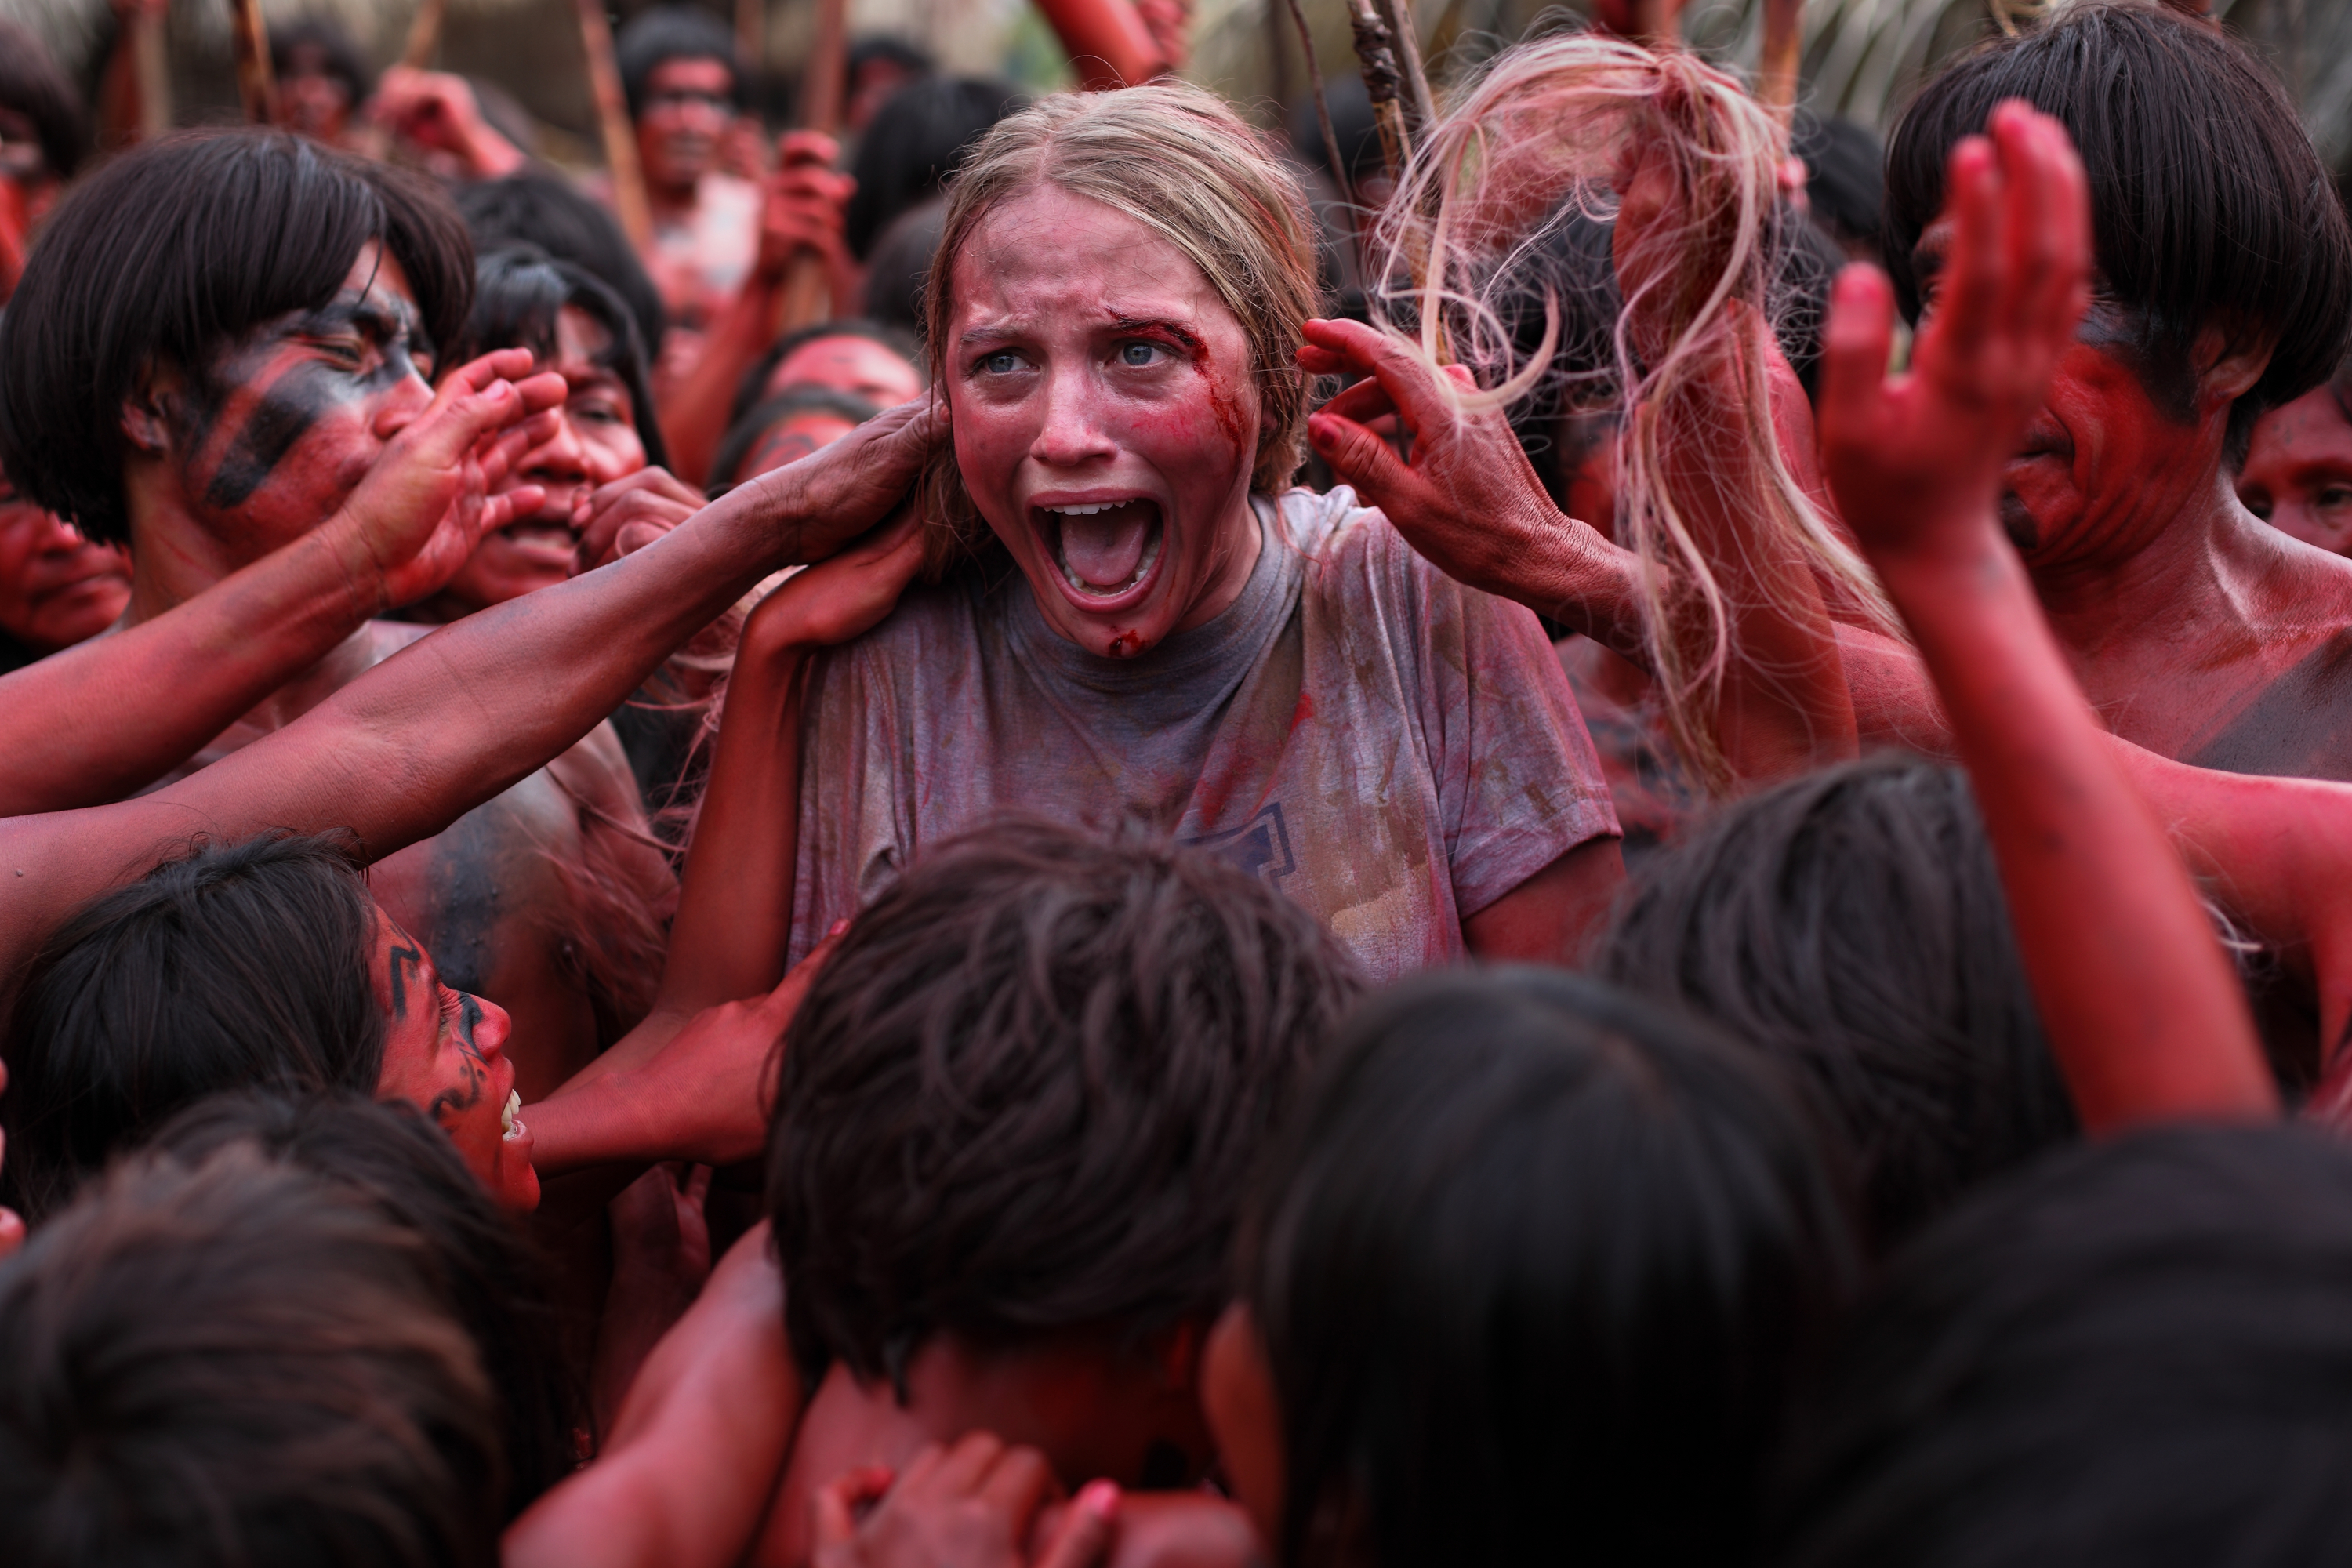 [Review] With 'The Green Inferno', Eli Roth Resurrects the Cannibal  Sub-Genre In All Its Depraved Glory!